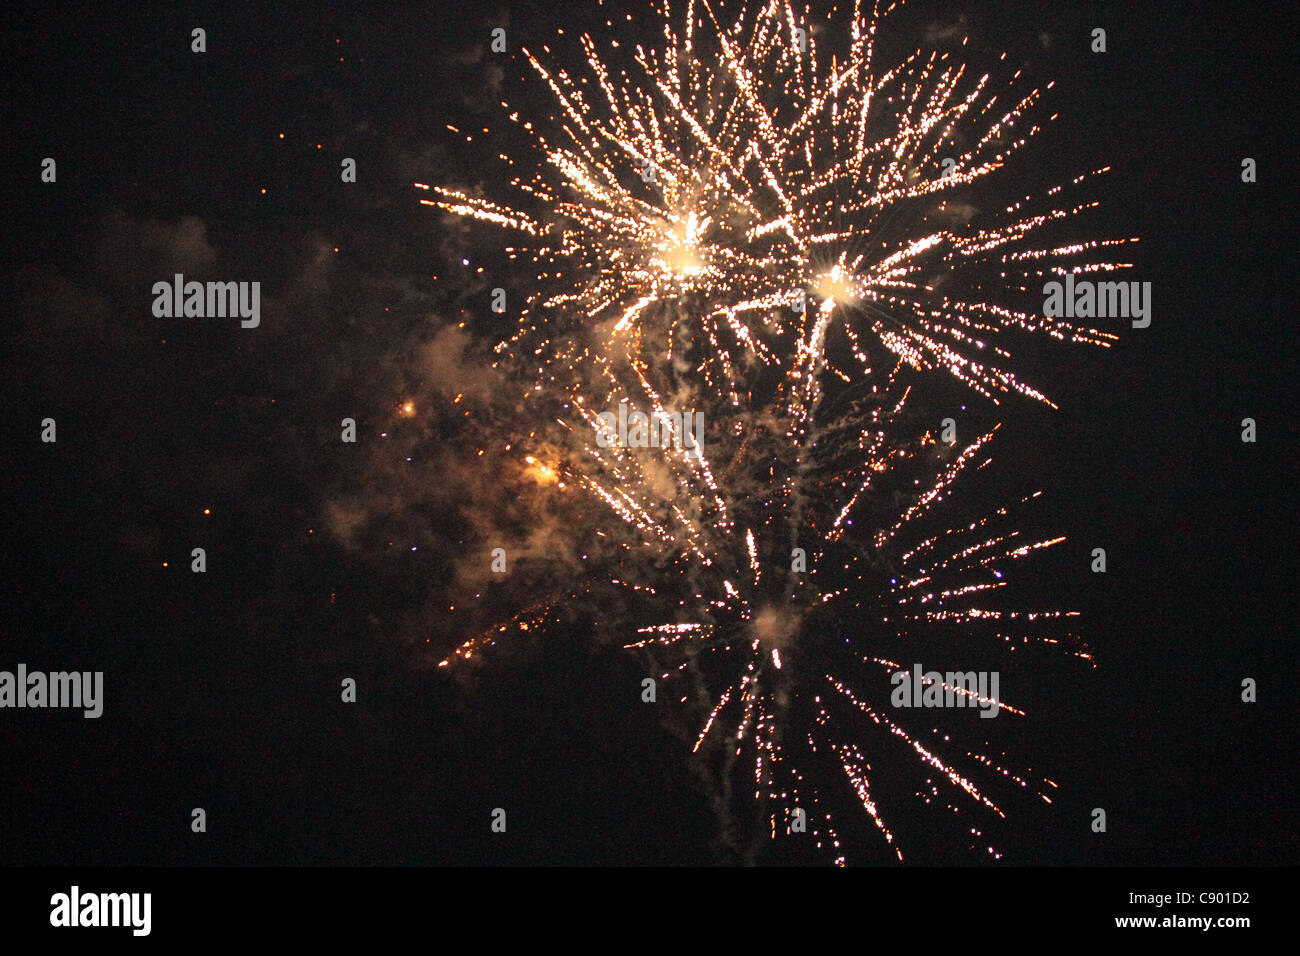 fire works at night July 4th - Stock Image